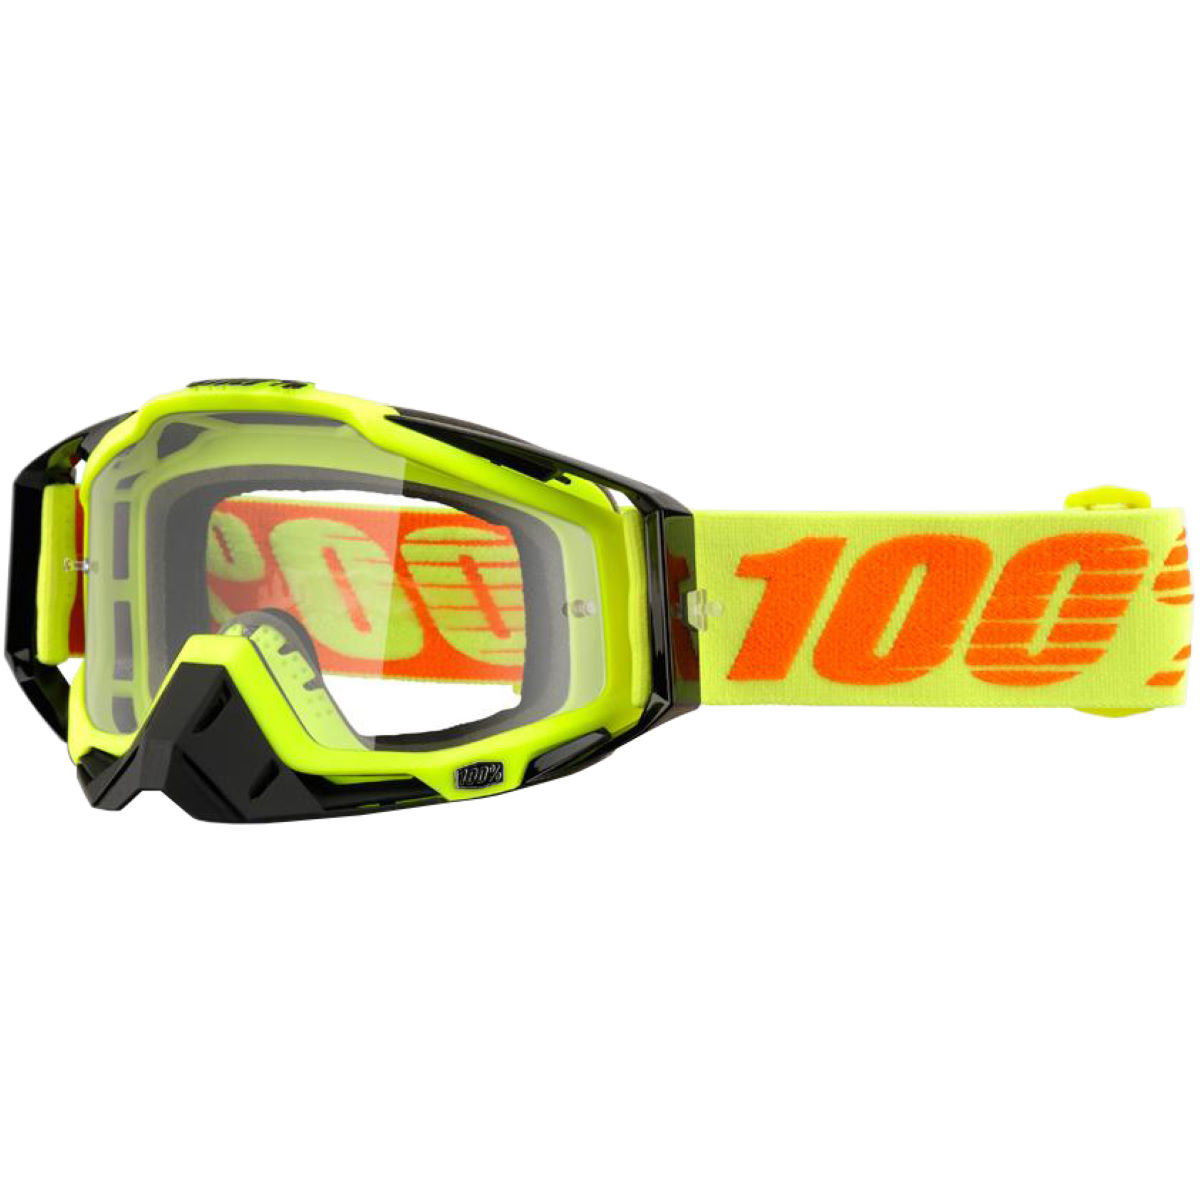 100% Racecraft Goggle - Clear Lens - One Size Attack Yellow